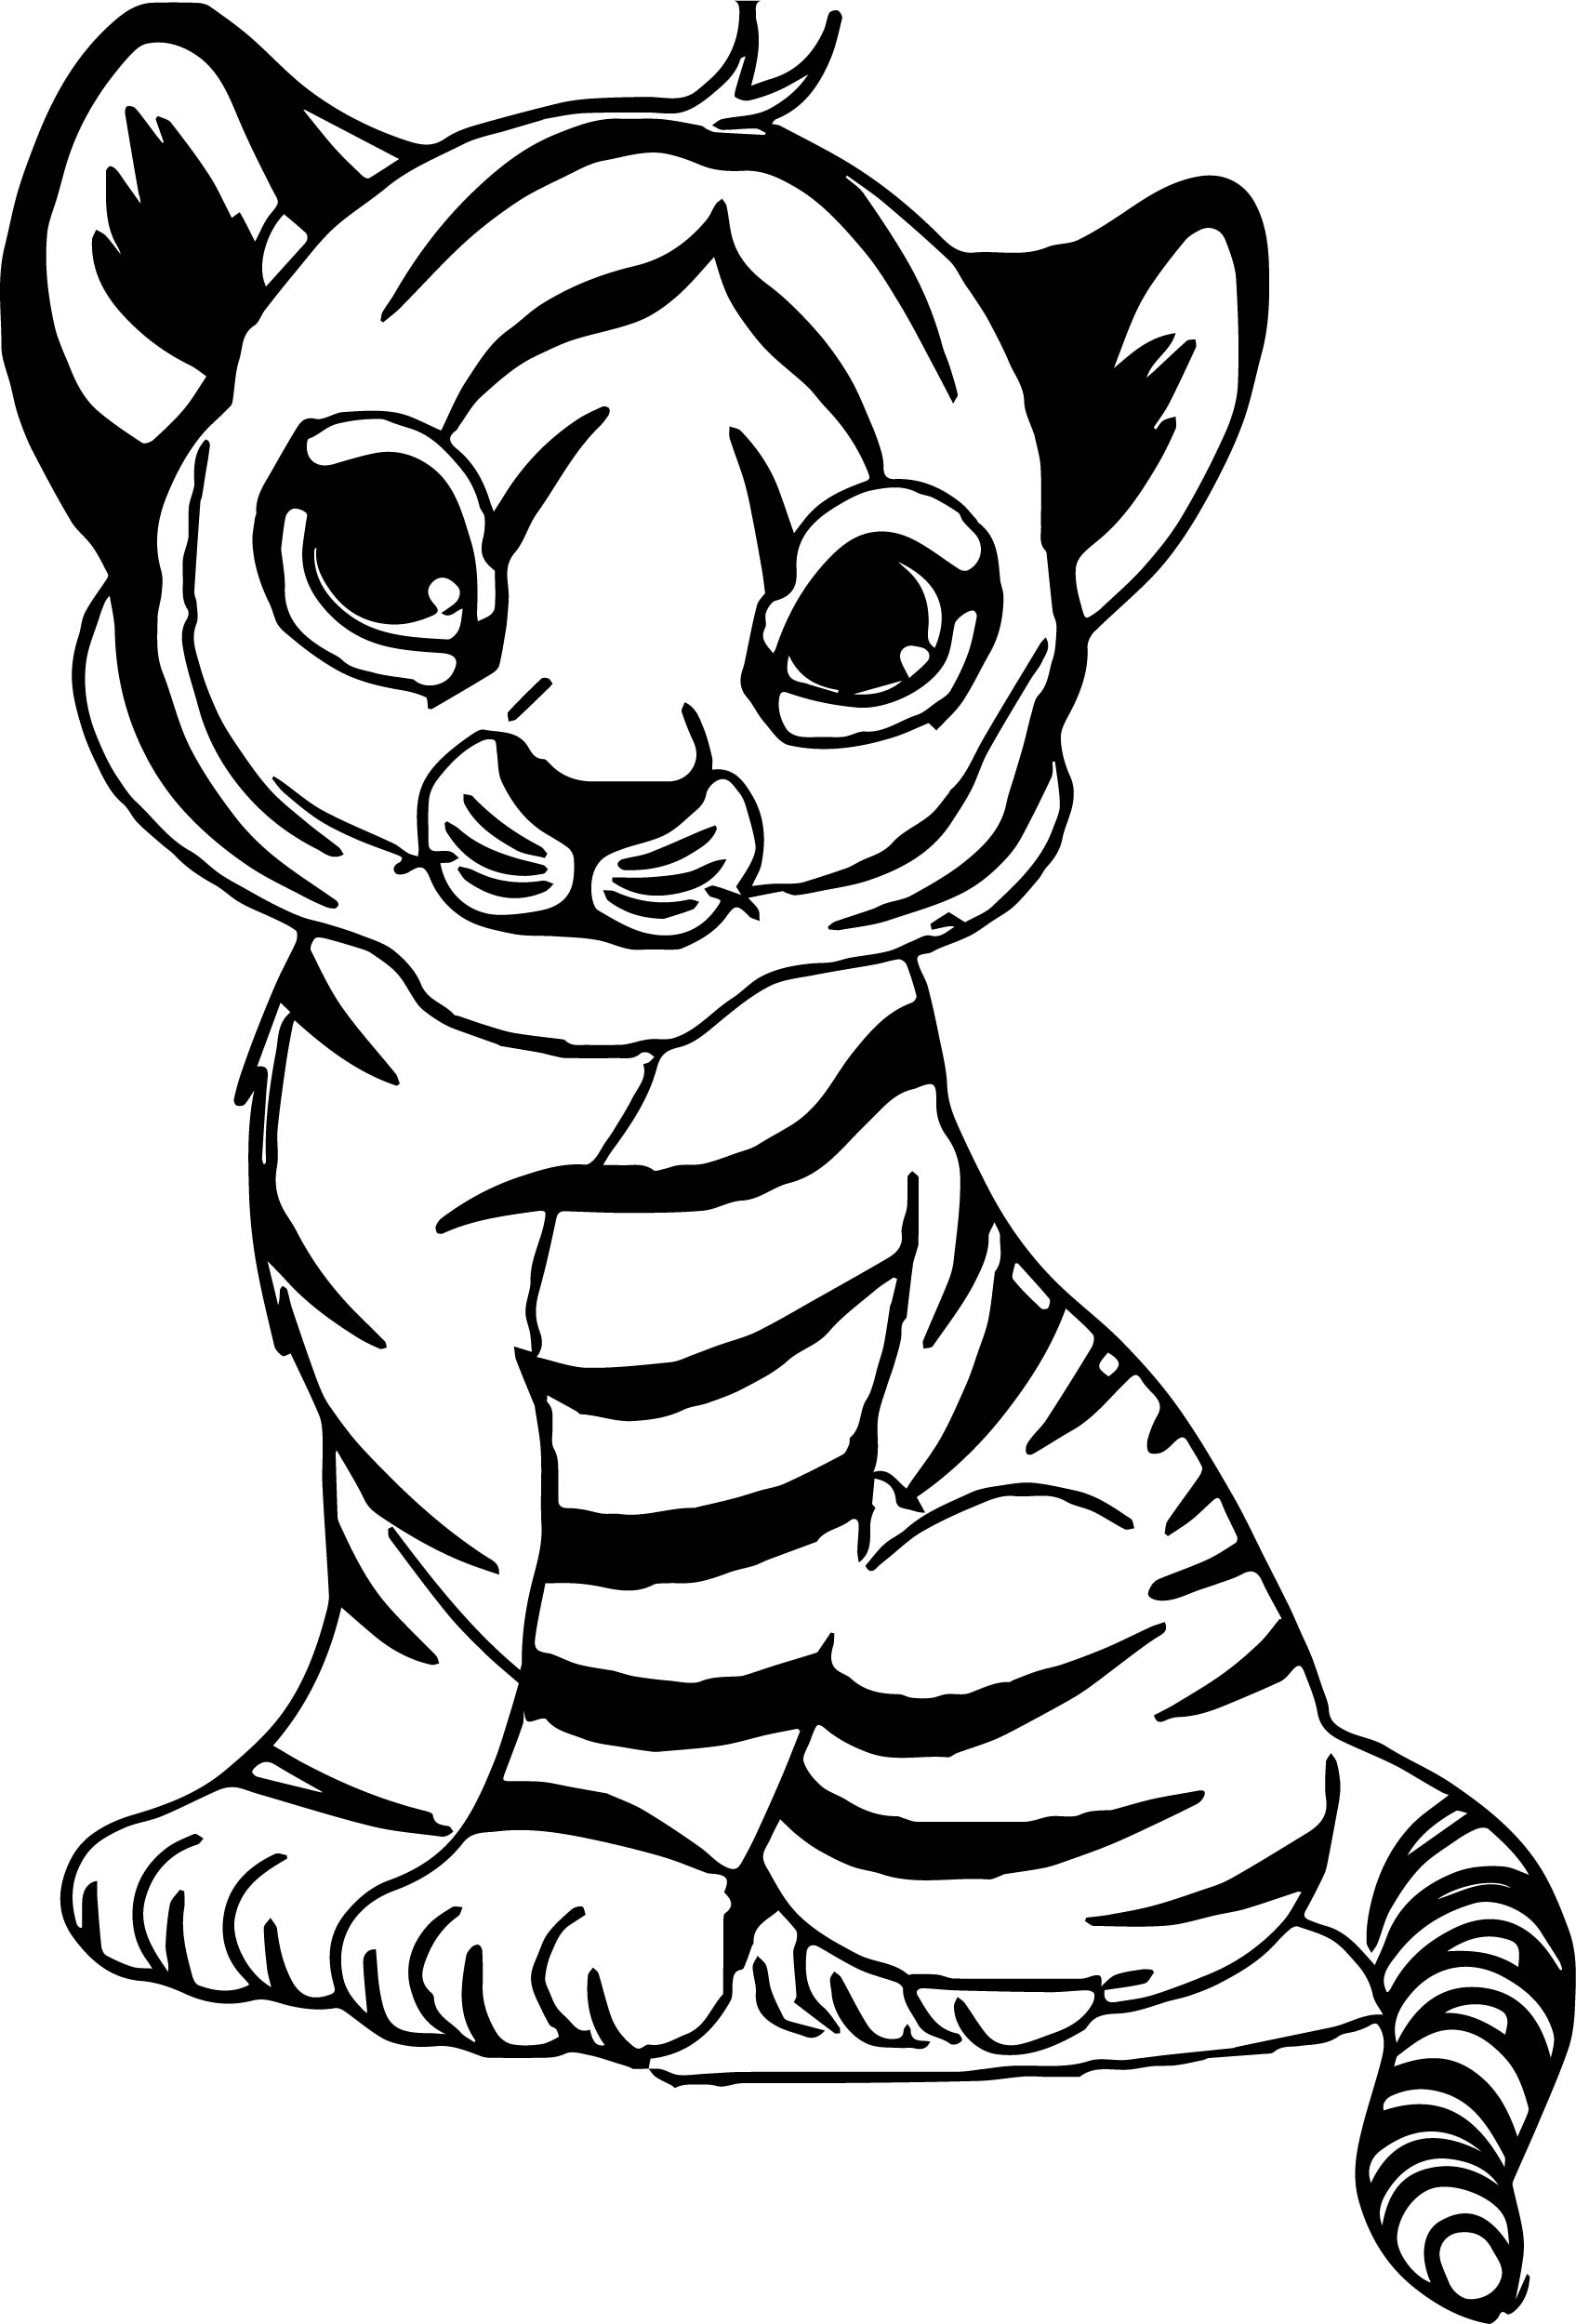 coloring pictures of baby tigers baby tiger coloring pages preschool crafts pictures baby tigers coloring of